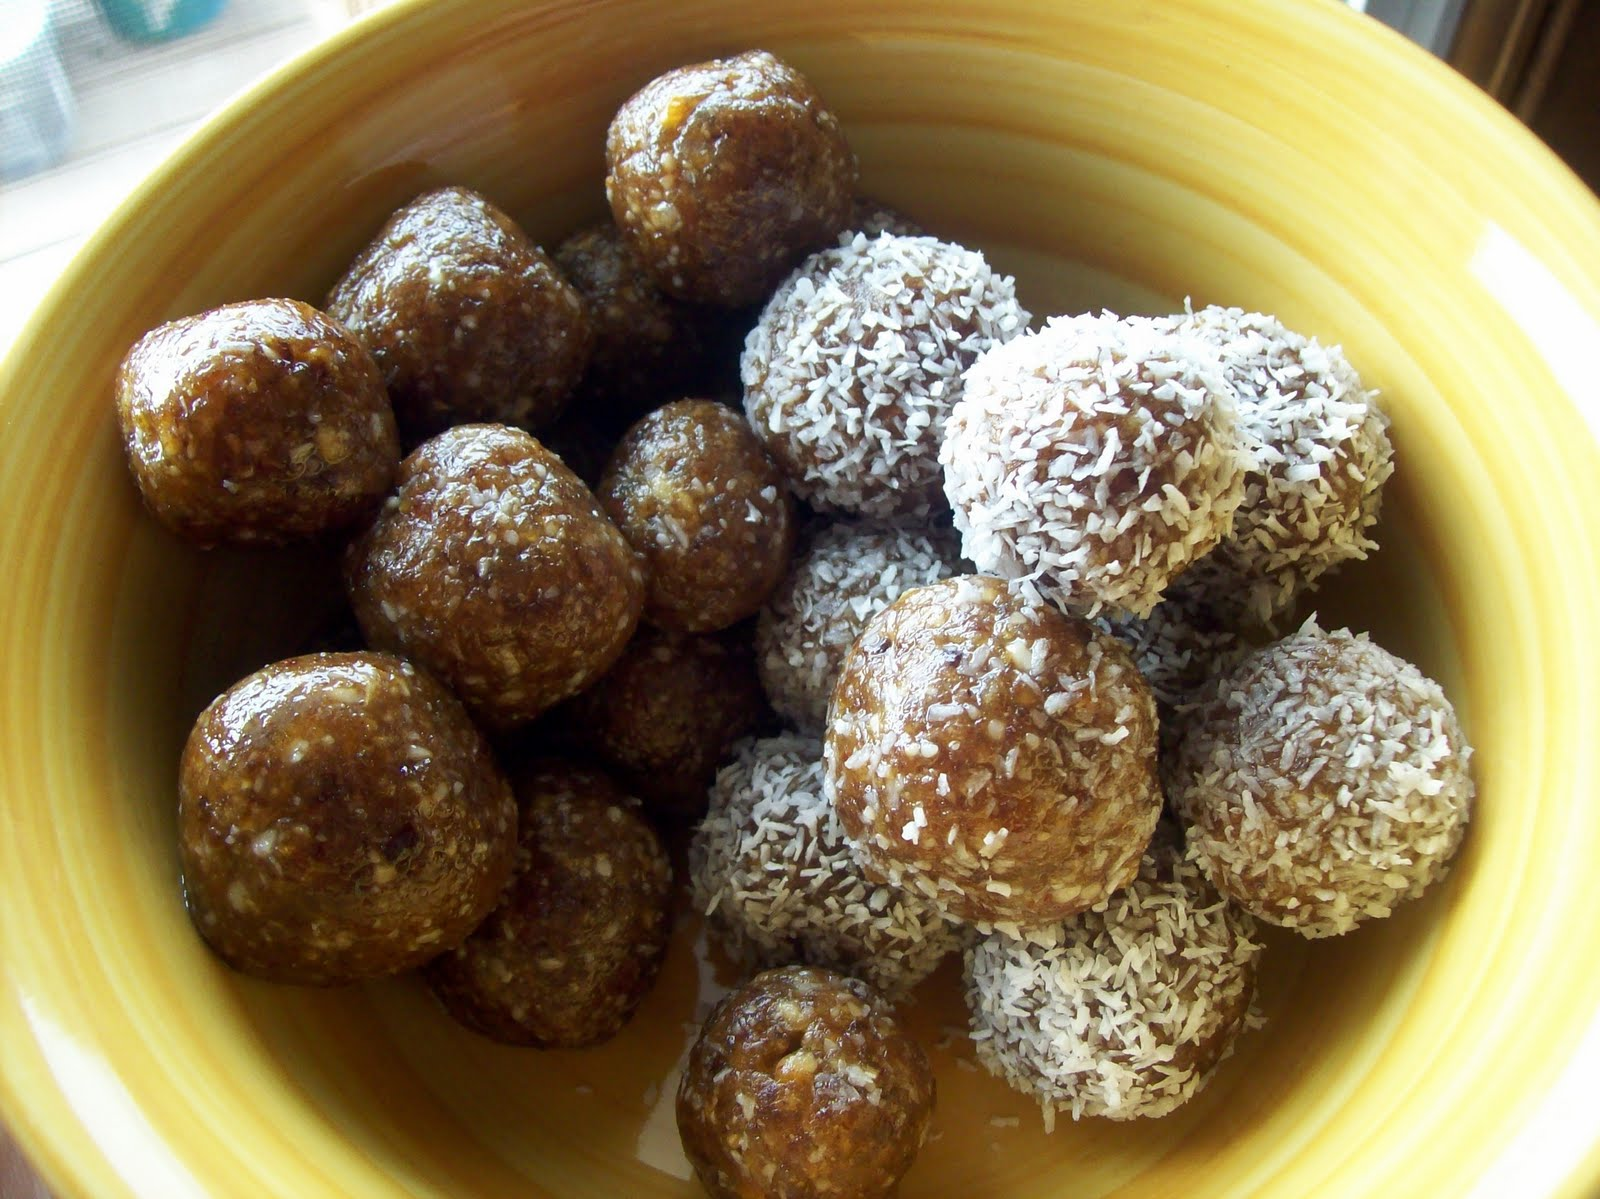 Date macadamia balls fill your real foods candy bowl